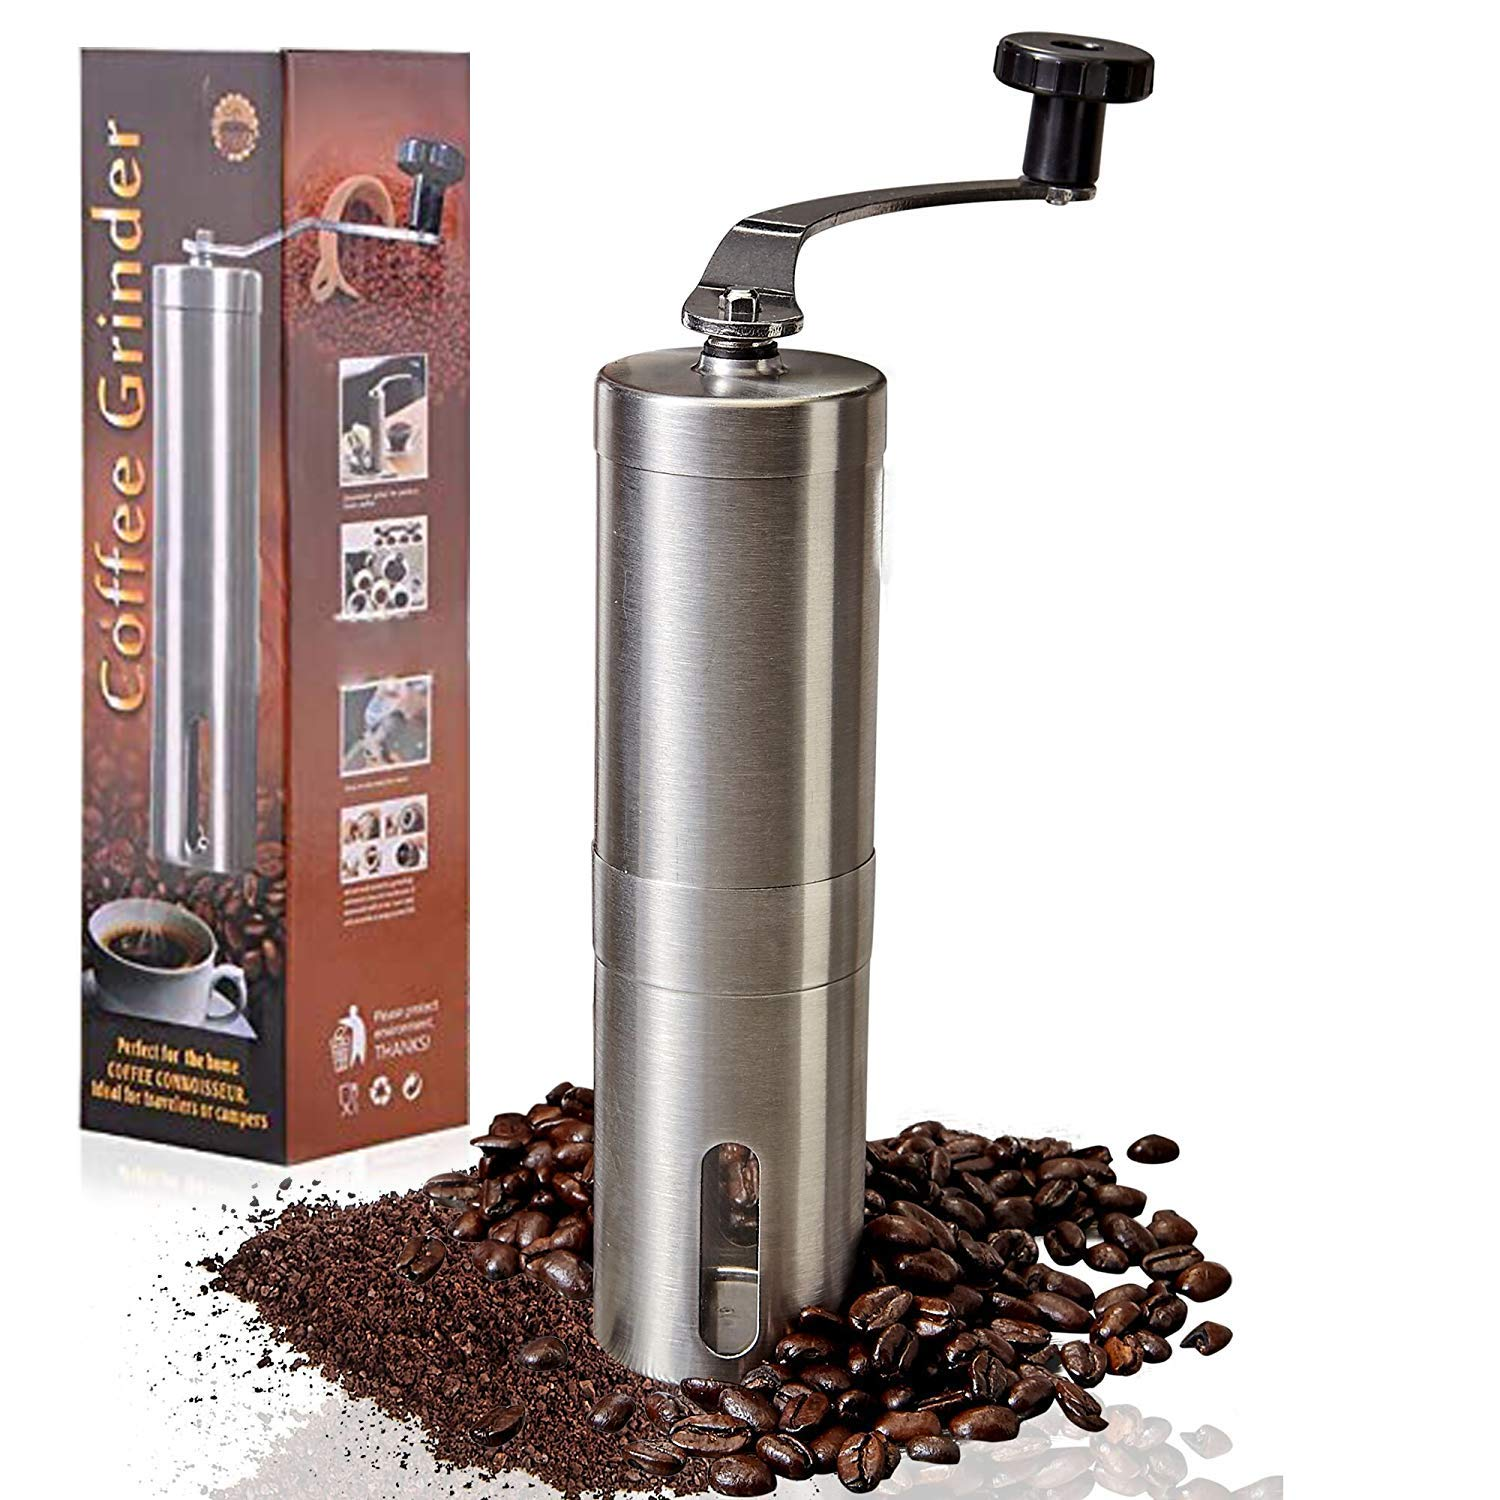 Manual Coffee Grinder, Adjustable Ceramic Core Cone Coffee Grinder, Portable Hand Coffee Grinder, for Espresso, French Press, Cold Drink and Turkish Brew - Stainless Steel by CAESGE